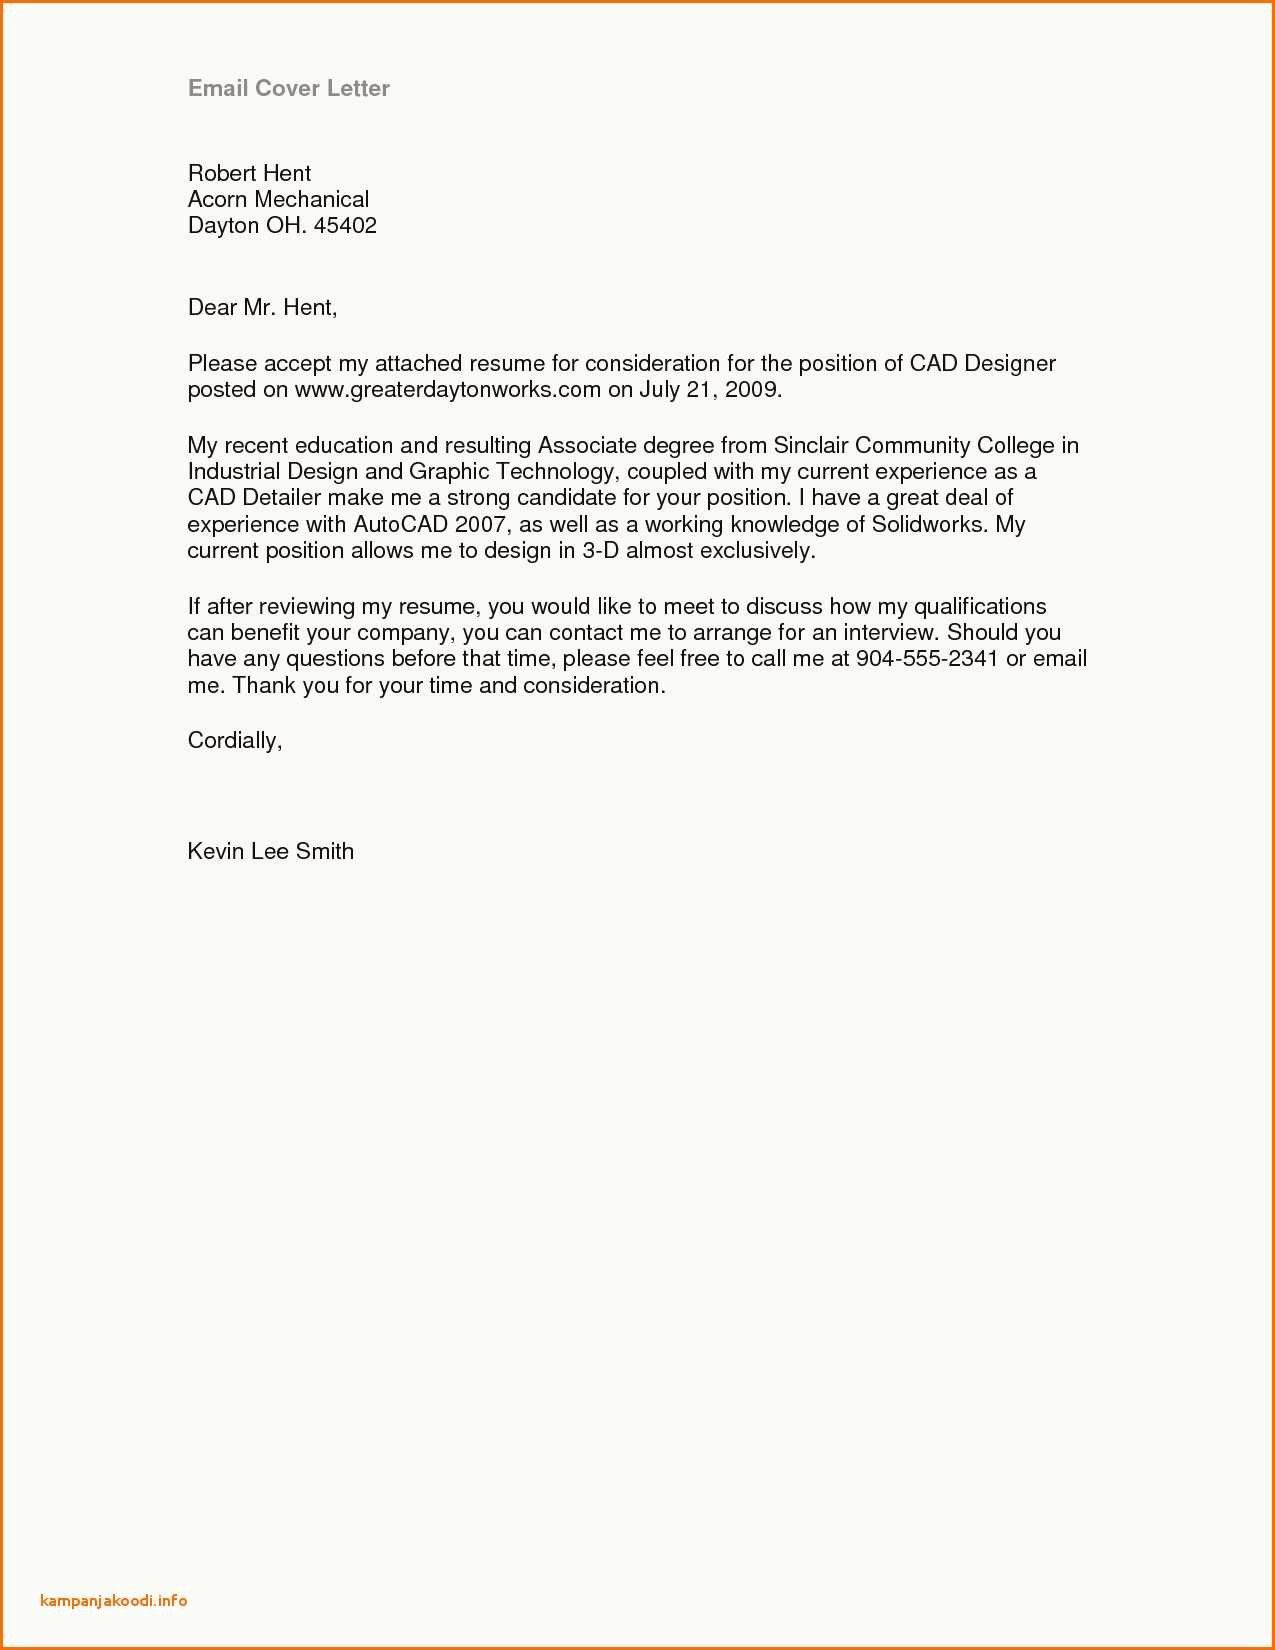 Best Of Job Application Cover Letter Template Free Cover Letter For Resume Email Cover Letter Job Application Cover Letter